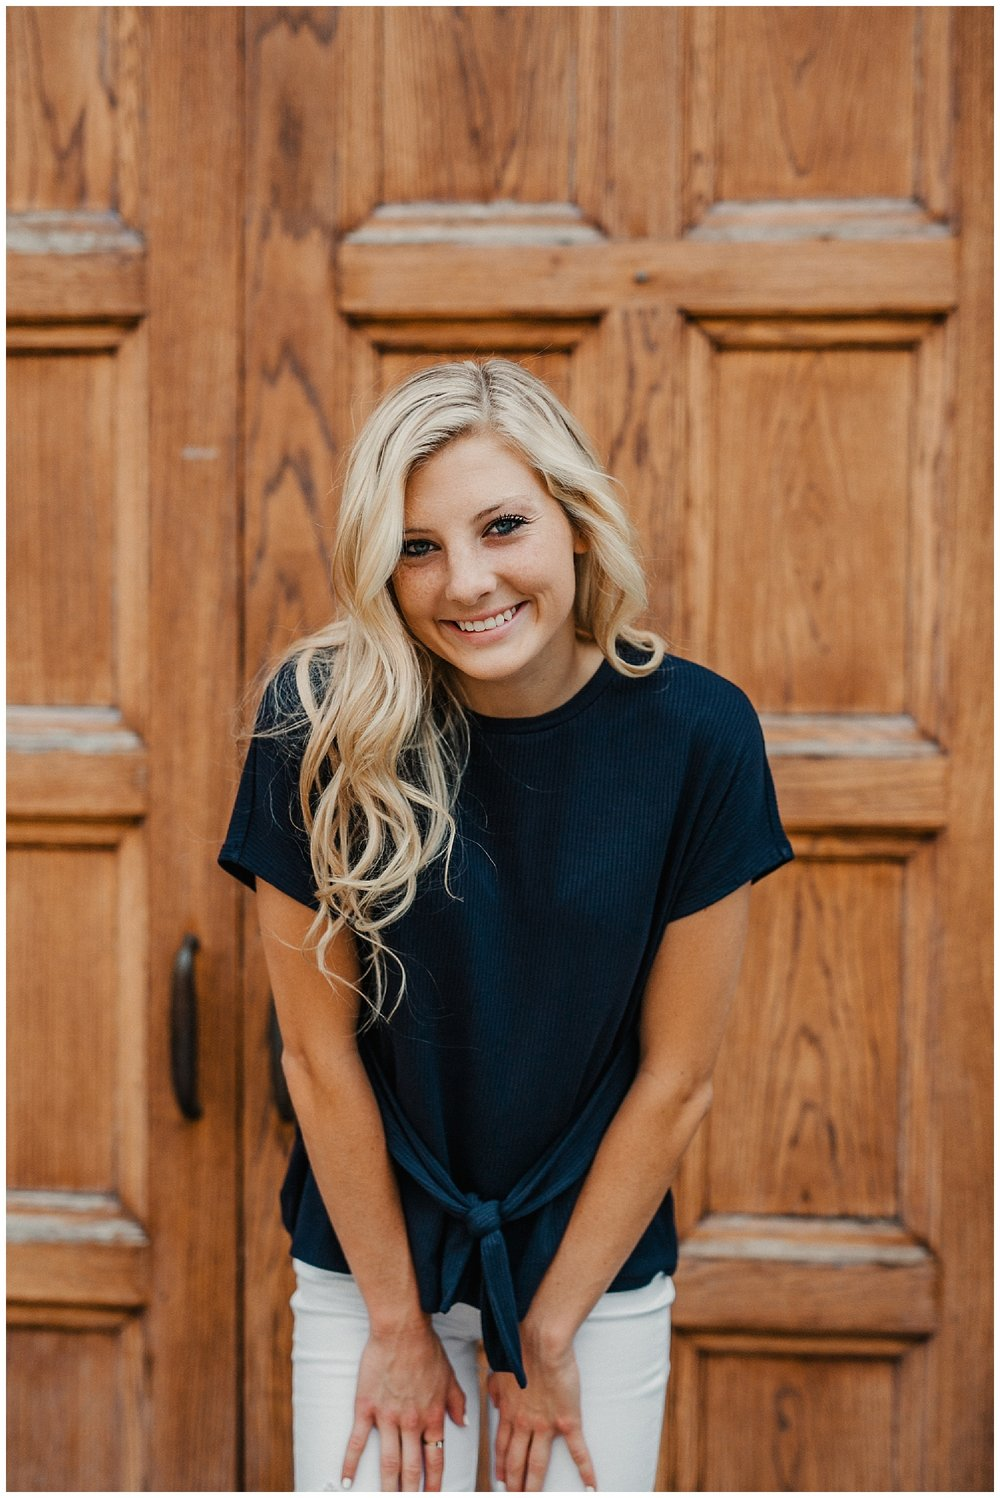 lindybeth photography - senior pictures - lexi-36.jpg